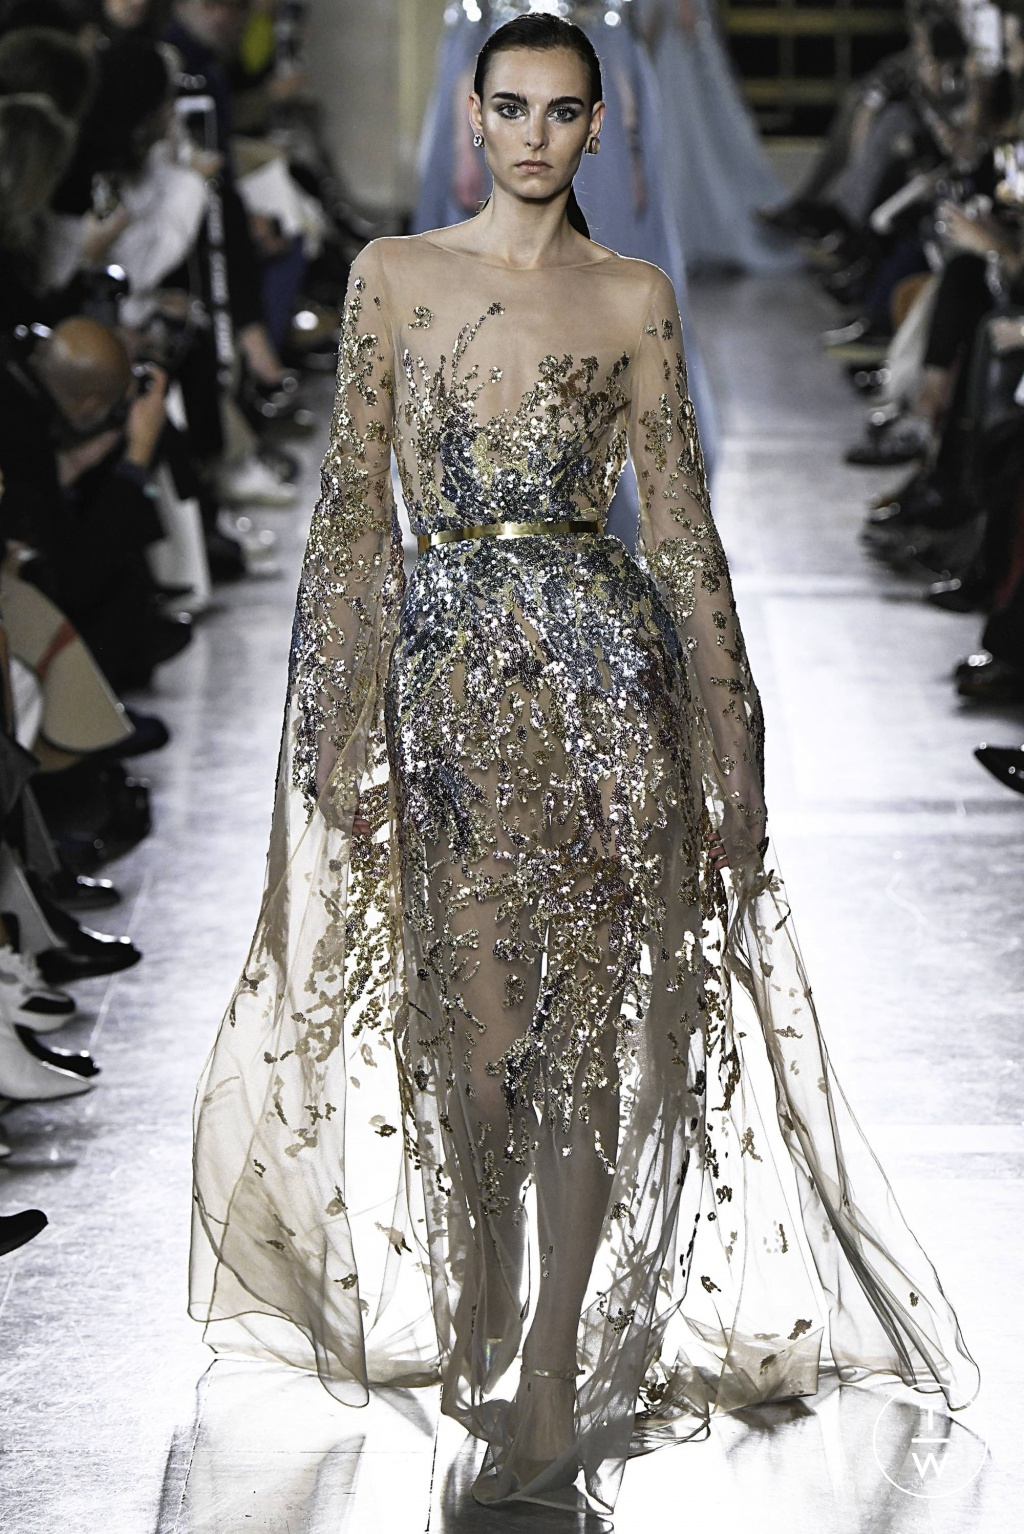 Fashion Week Paris Spring/Summer 2019 look 6 from the Elie Saab collection 高级定制